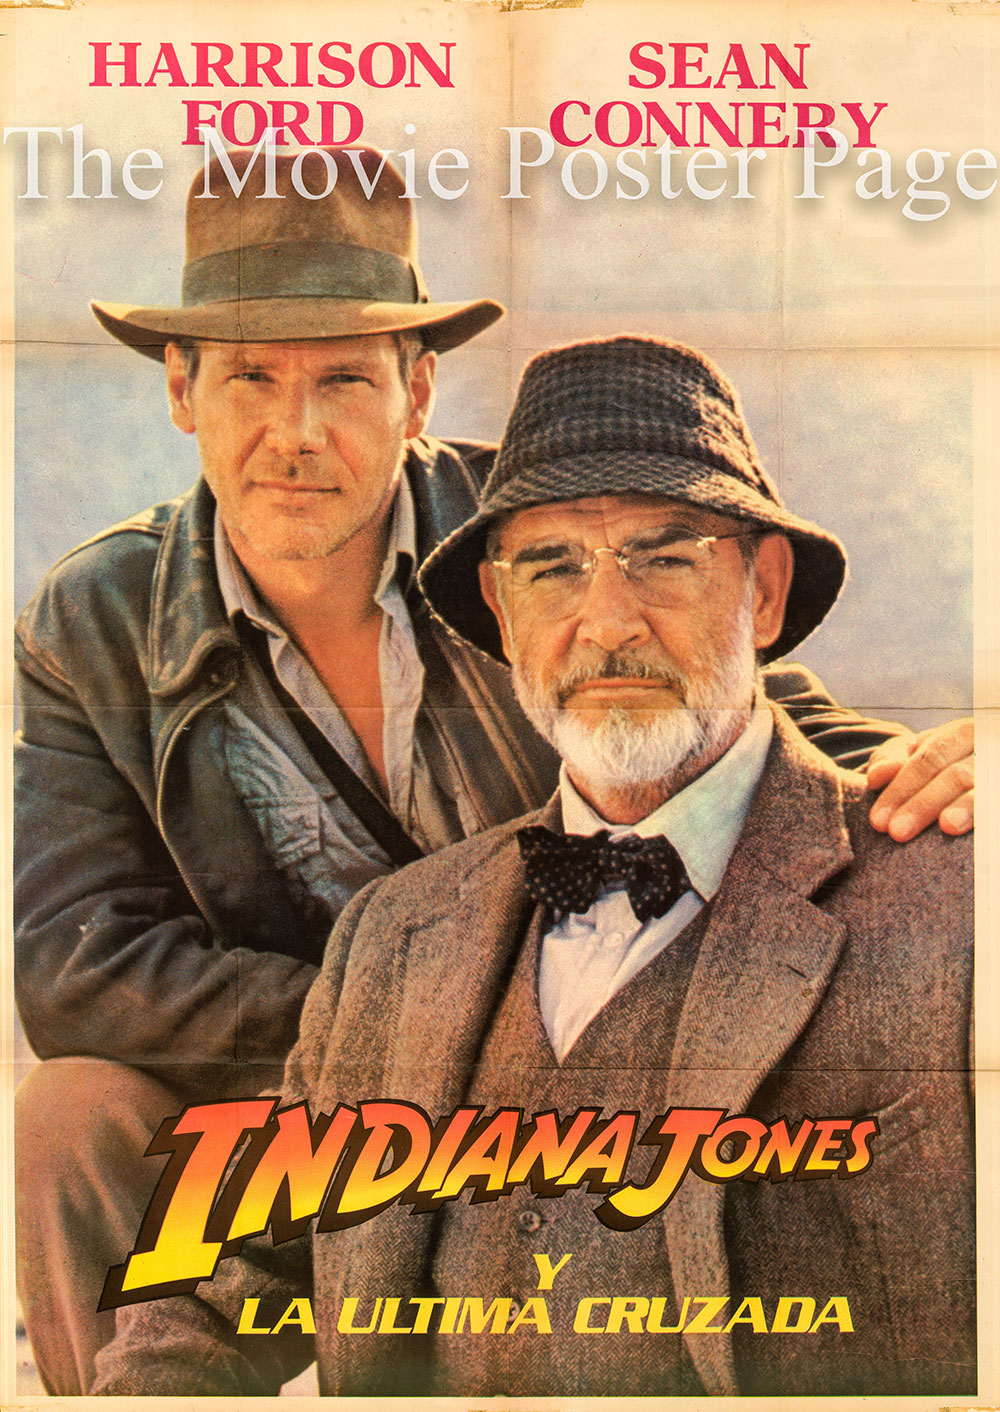 Pictured is a Spanish two-sheet poster for the 1989 Steven Spielberg film Indiana Jones and the Last Crusade starring Harrison Ford as Indiana Jones.